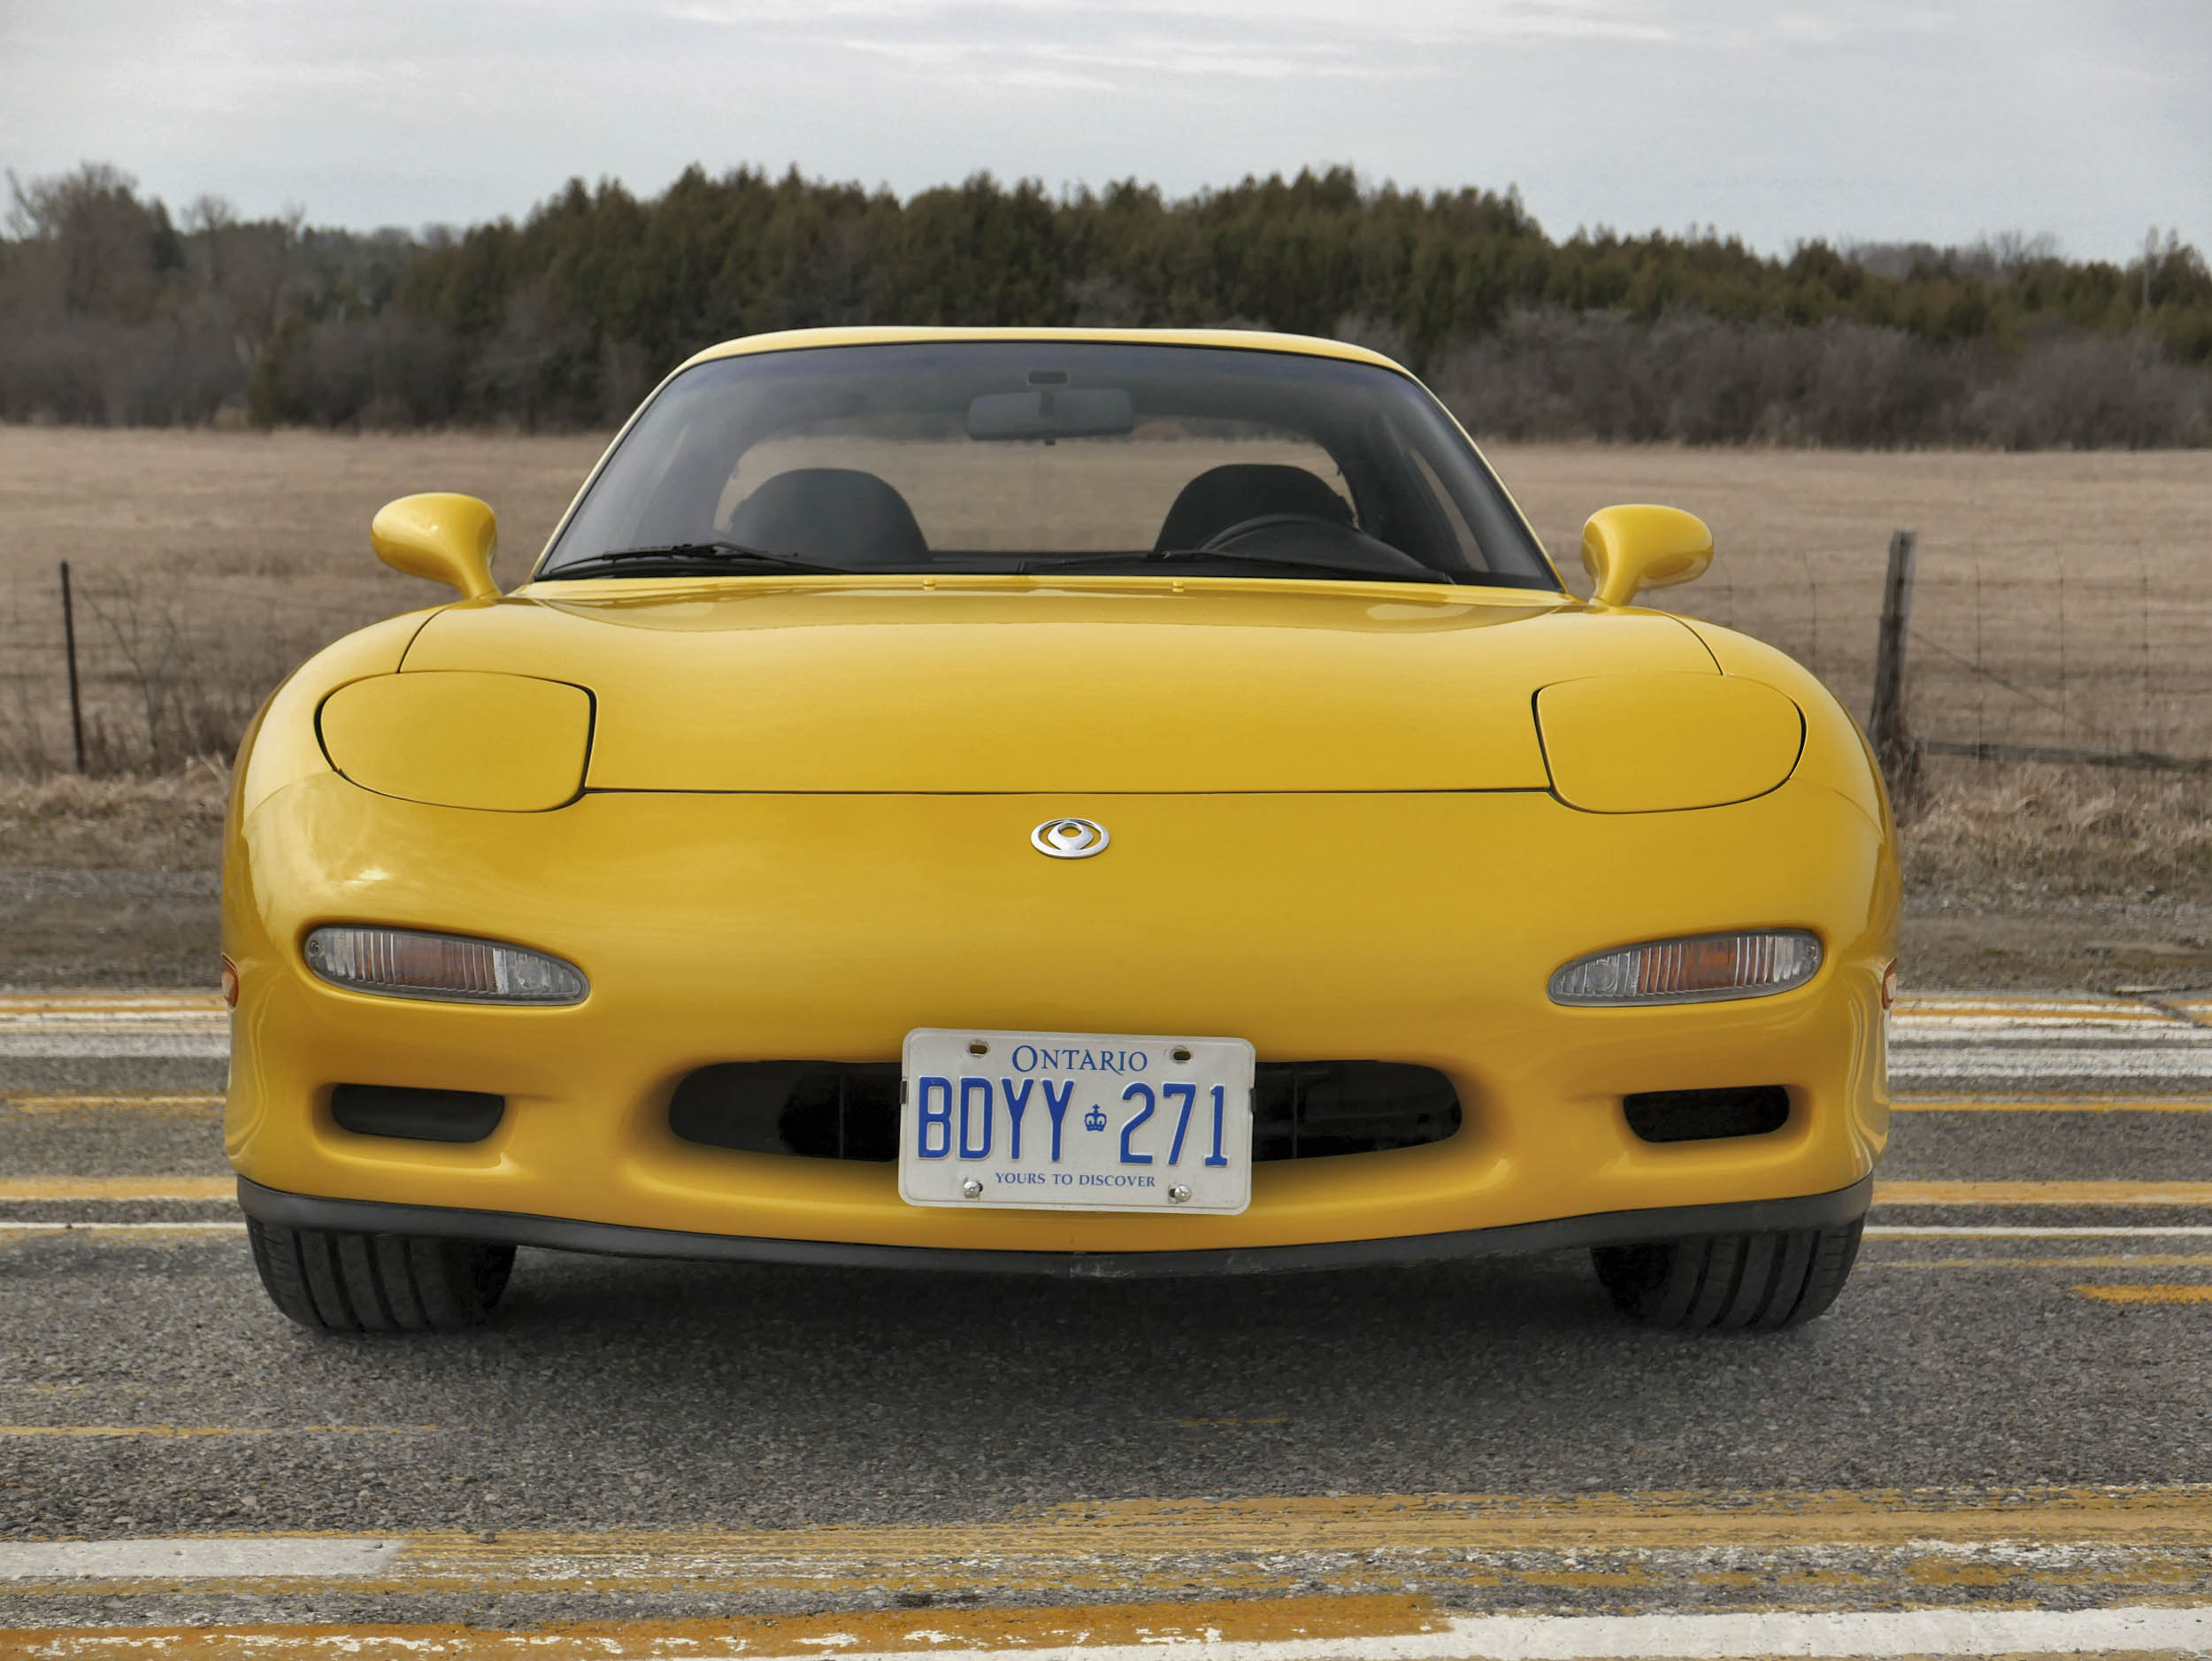 Yellow 1993 Mazda RX-7 front